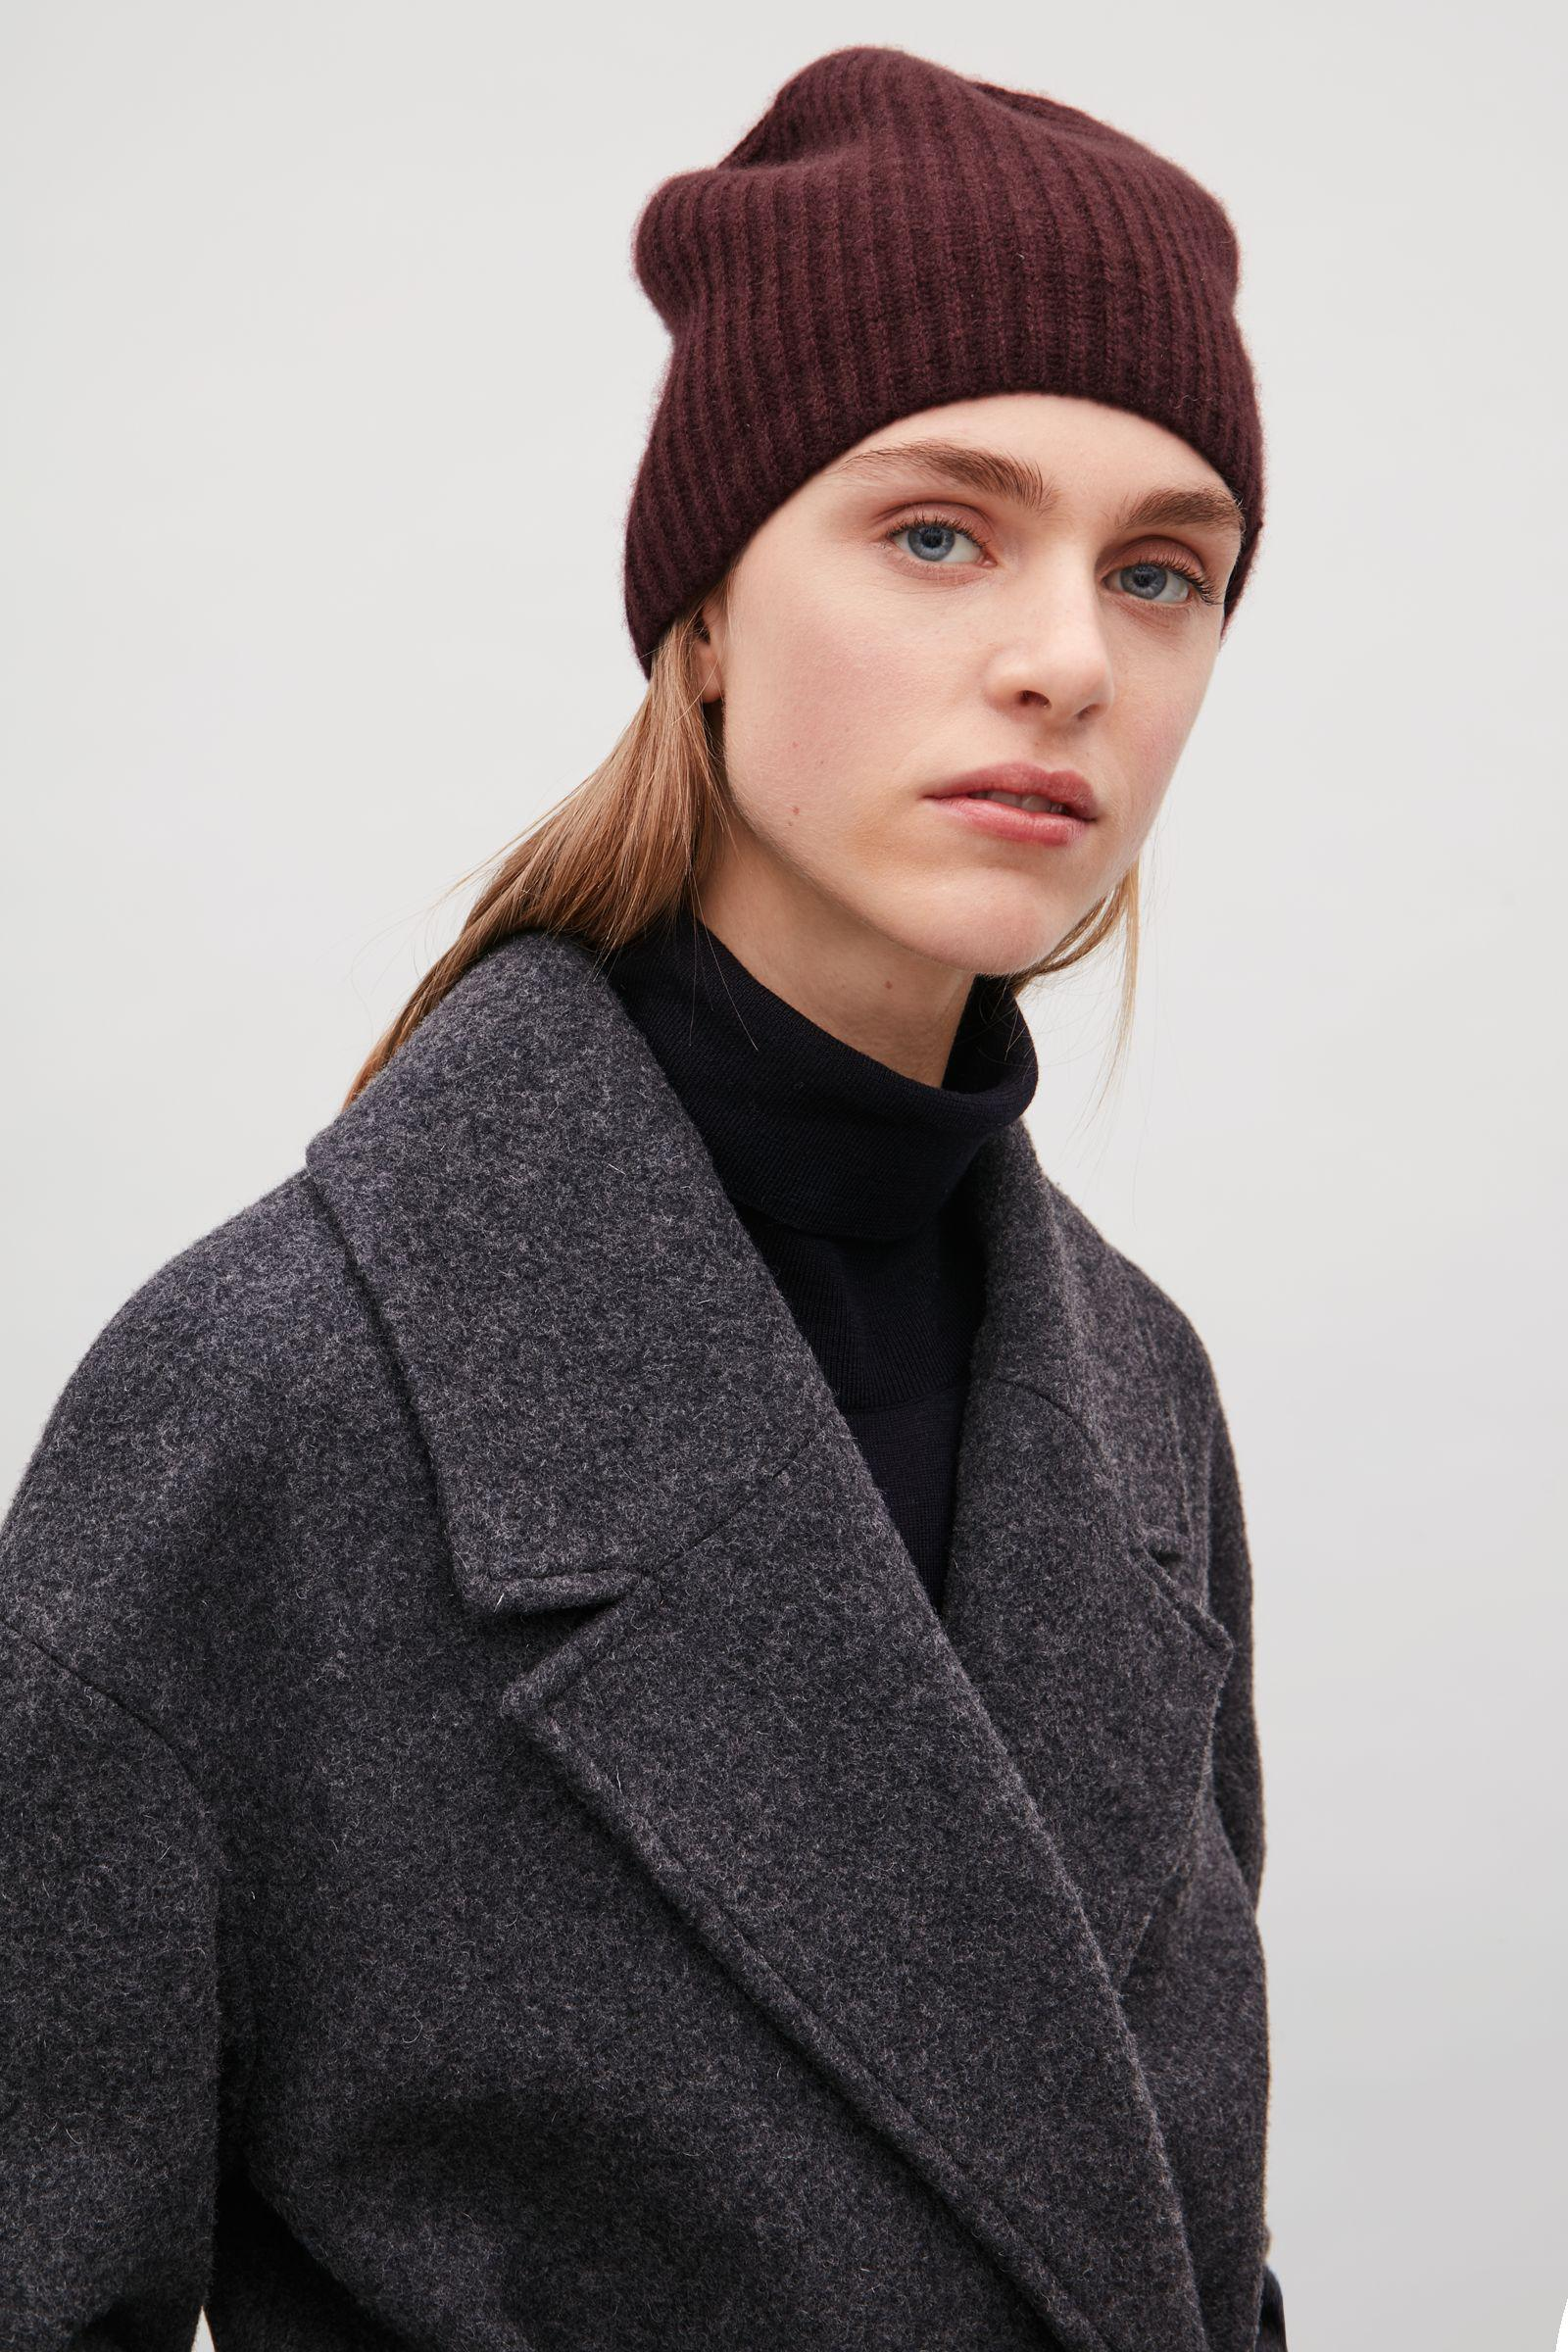 Lyst - COS Ribbed Cashmere Hat 5c7c5b85818